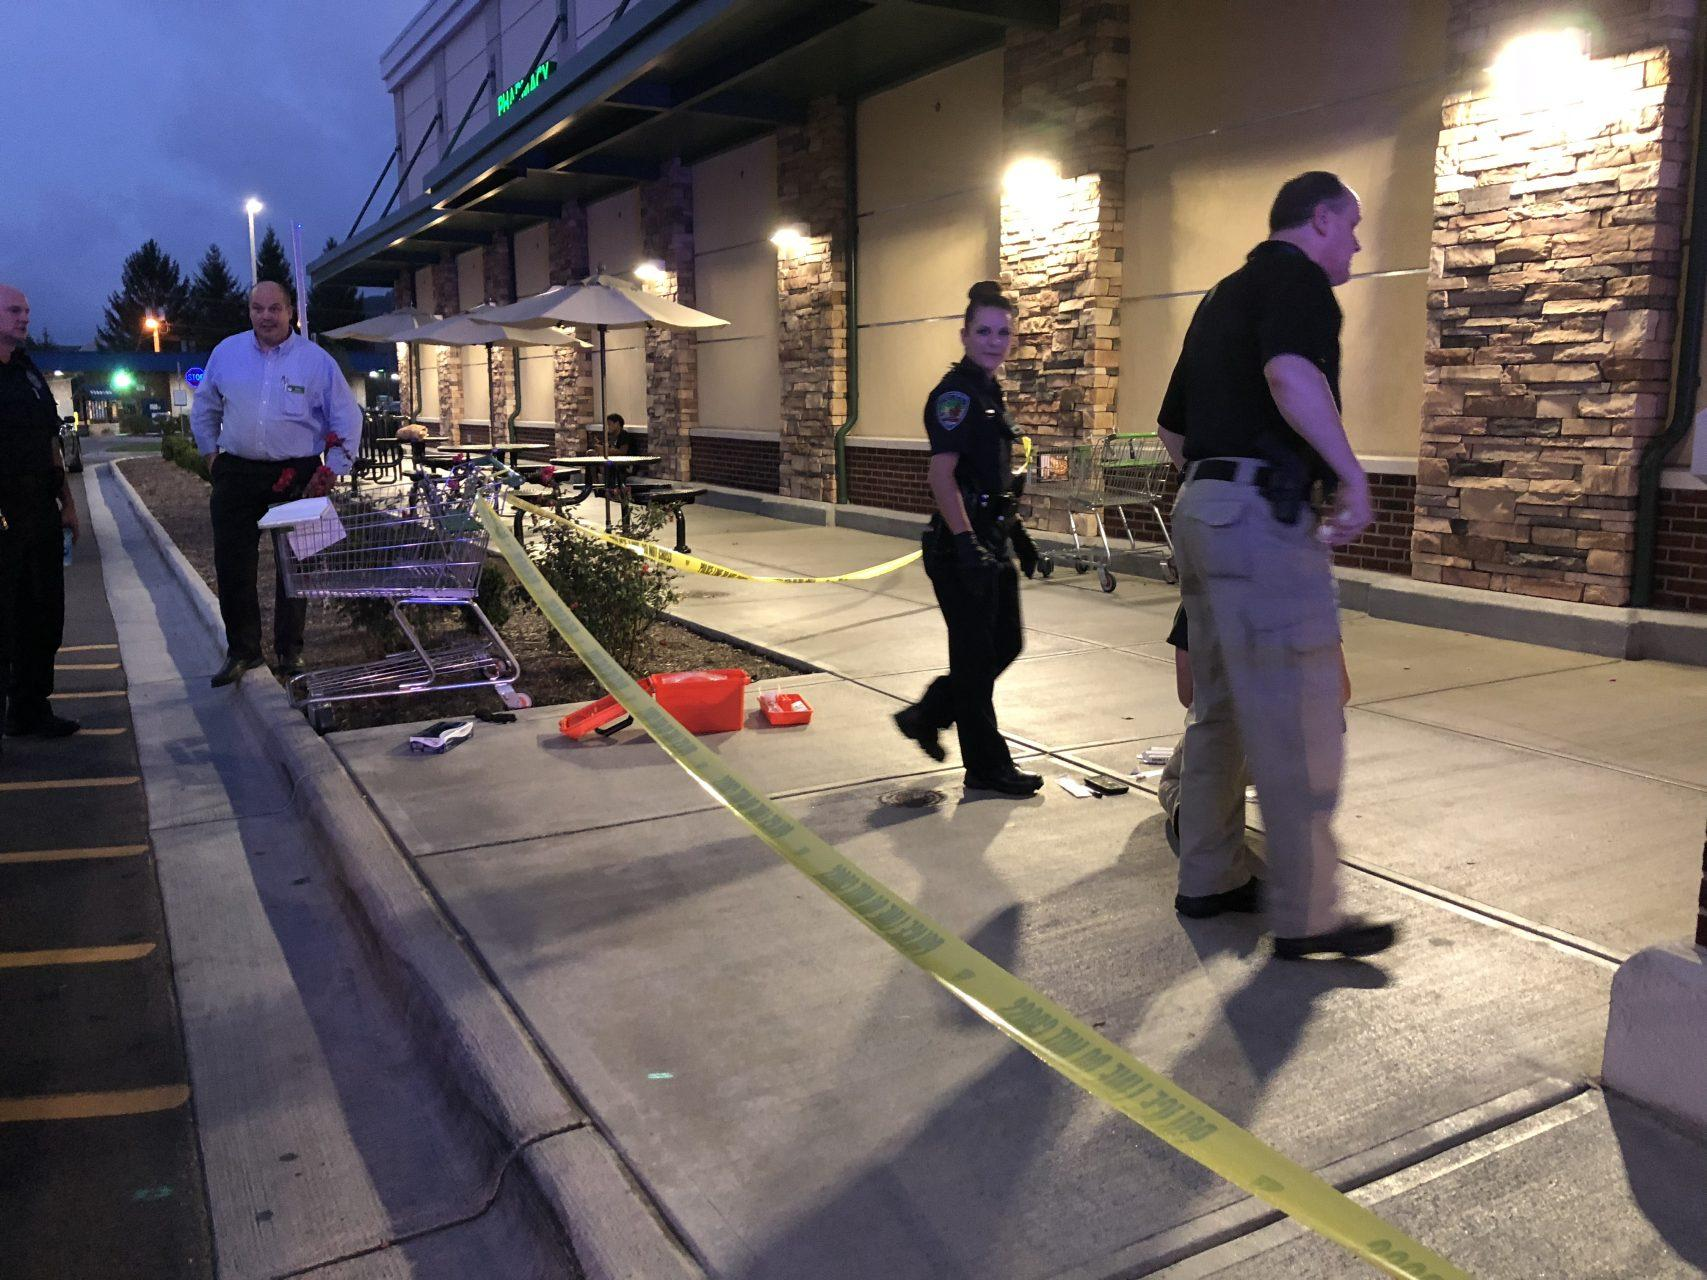 Stabbing at Publix leaves one wounded